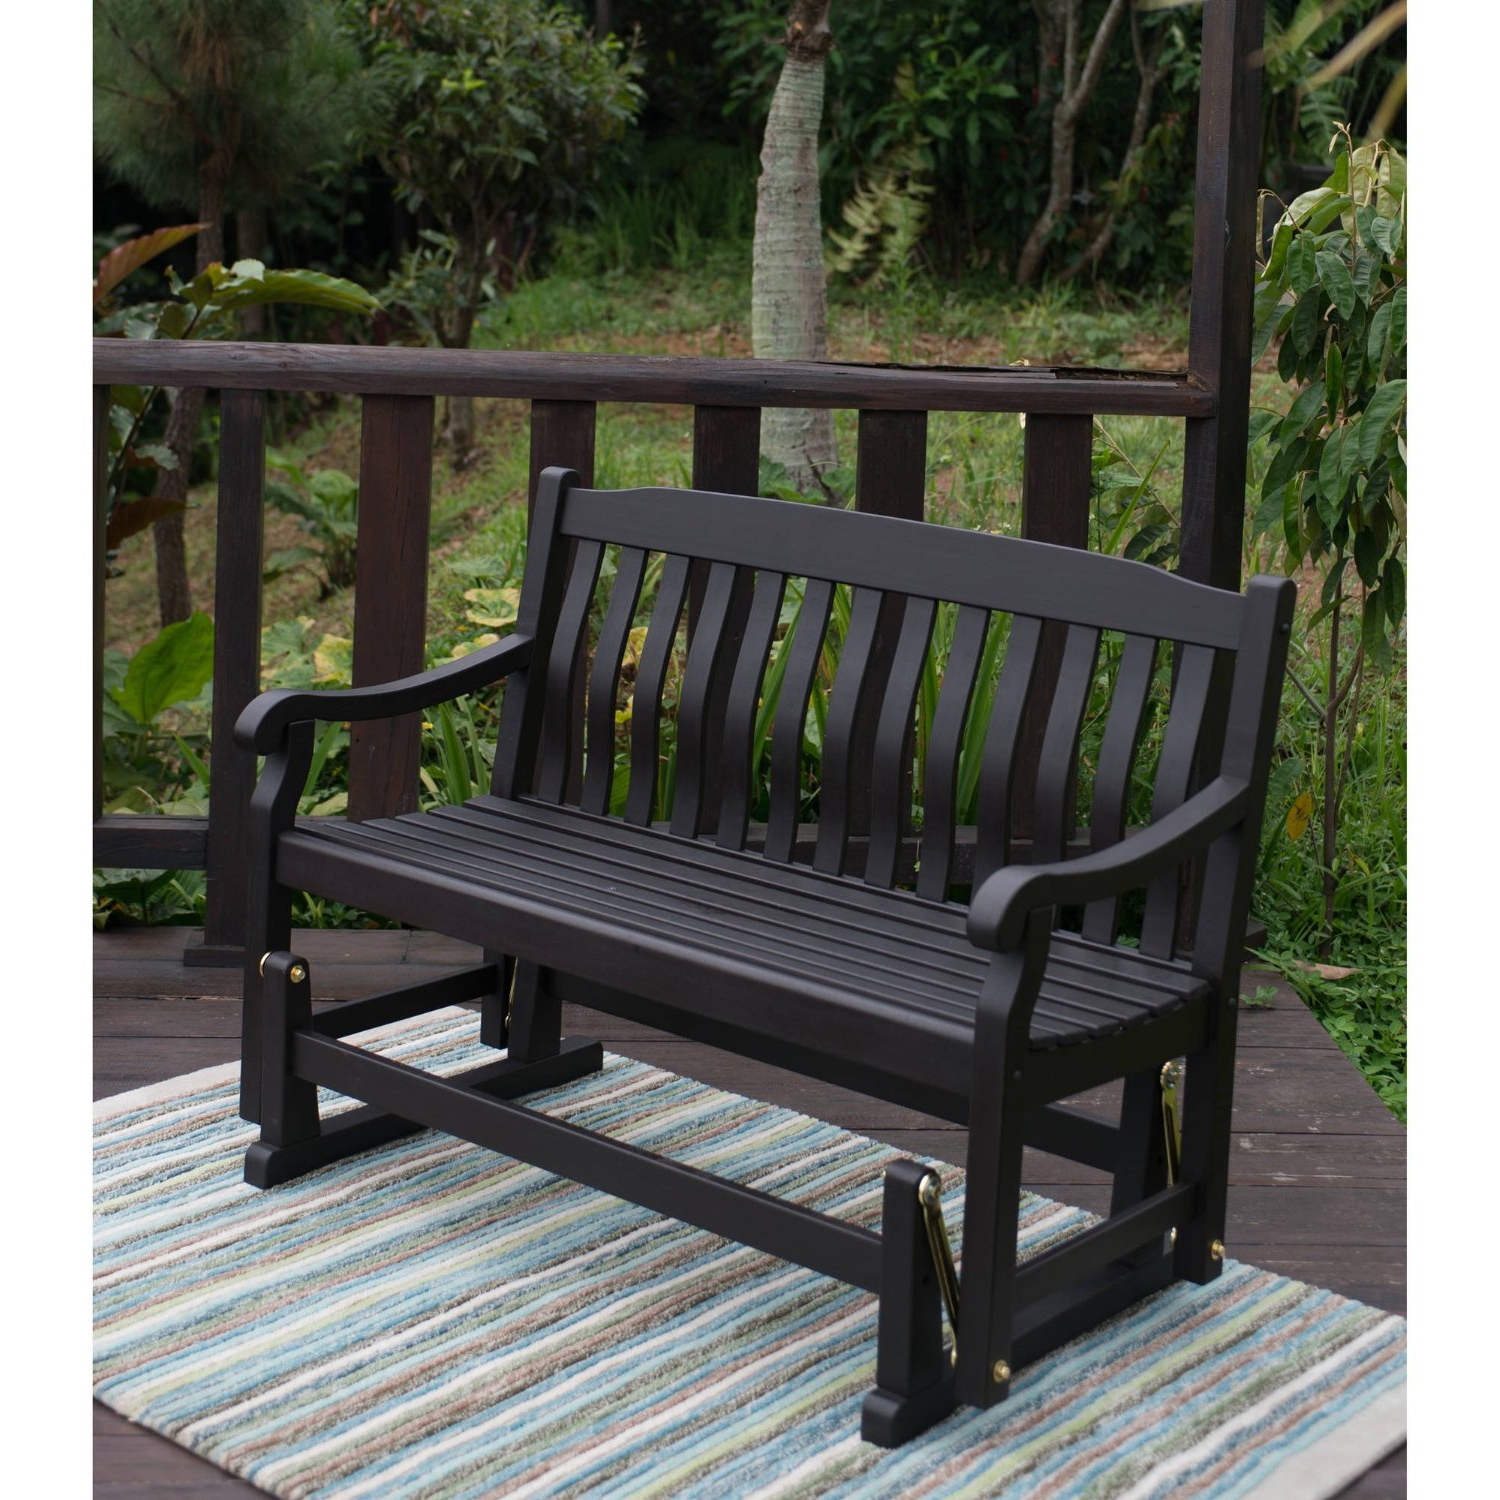 Cheap Glider Patio Bench, Find Glider Patio Bench Deals On In Well Liked Teak Outdoor Glider Benches (View 12 of 30)